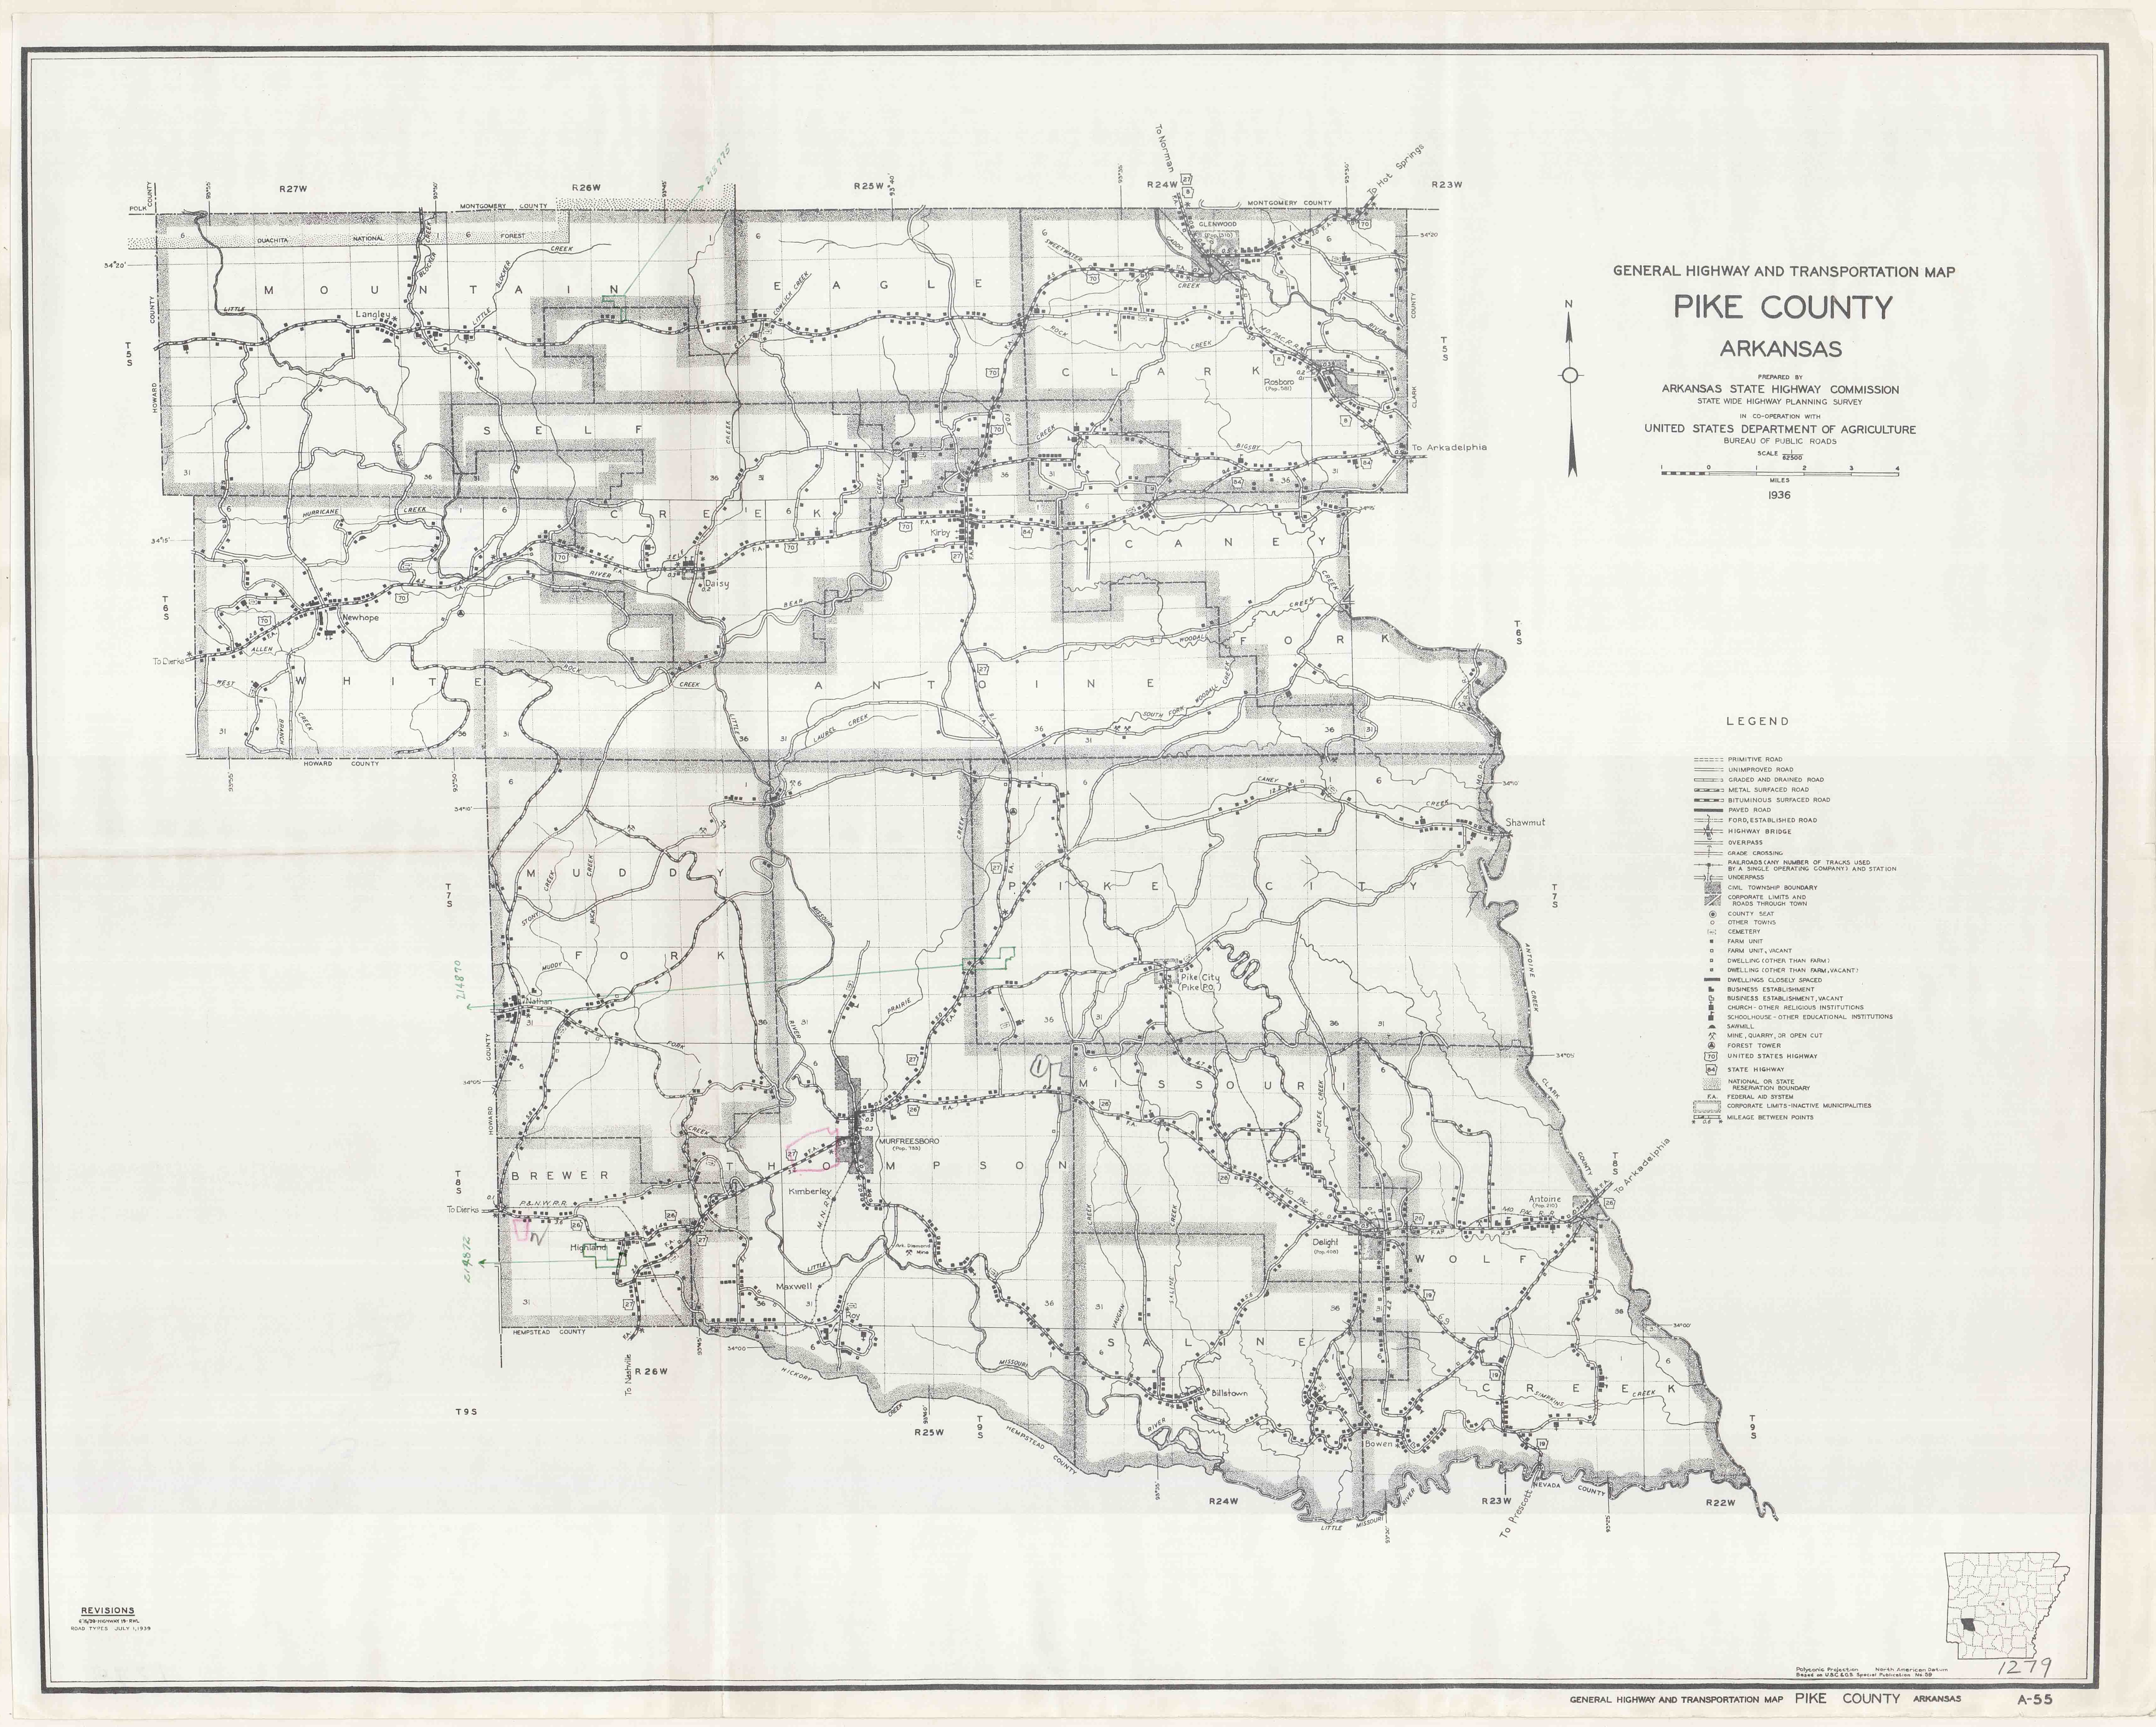 General Highway and Transportation Map of Pike County, Arkansas\